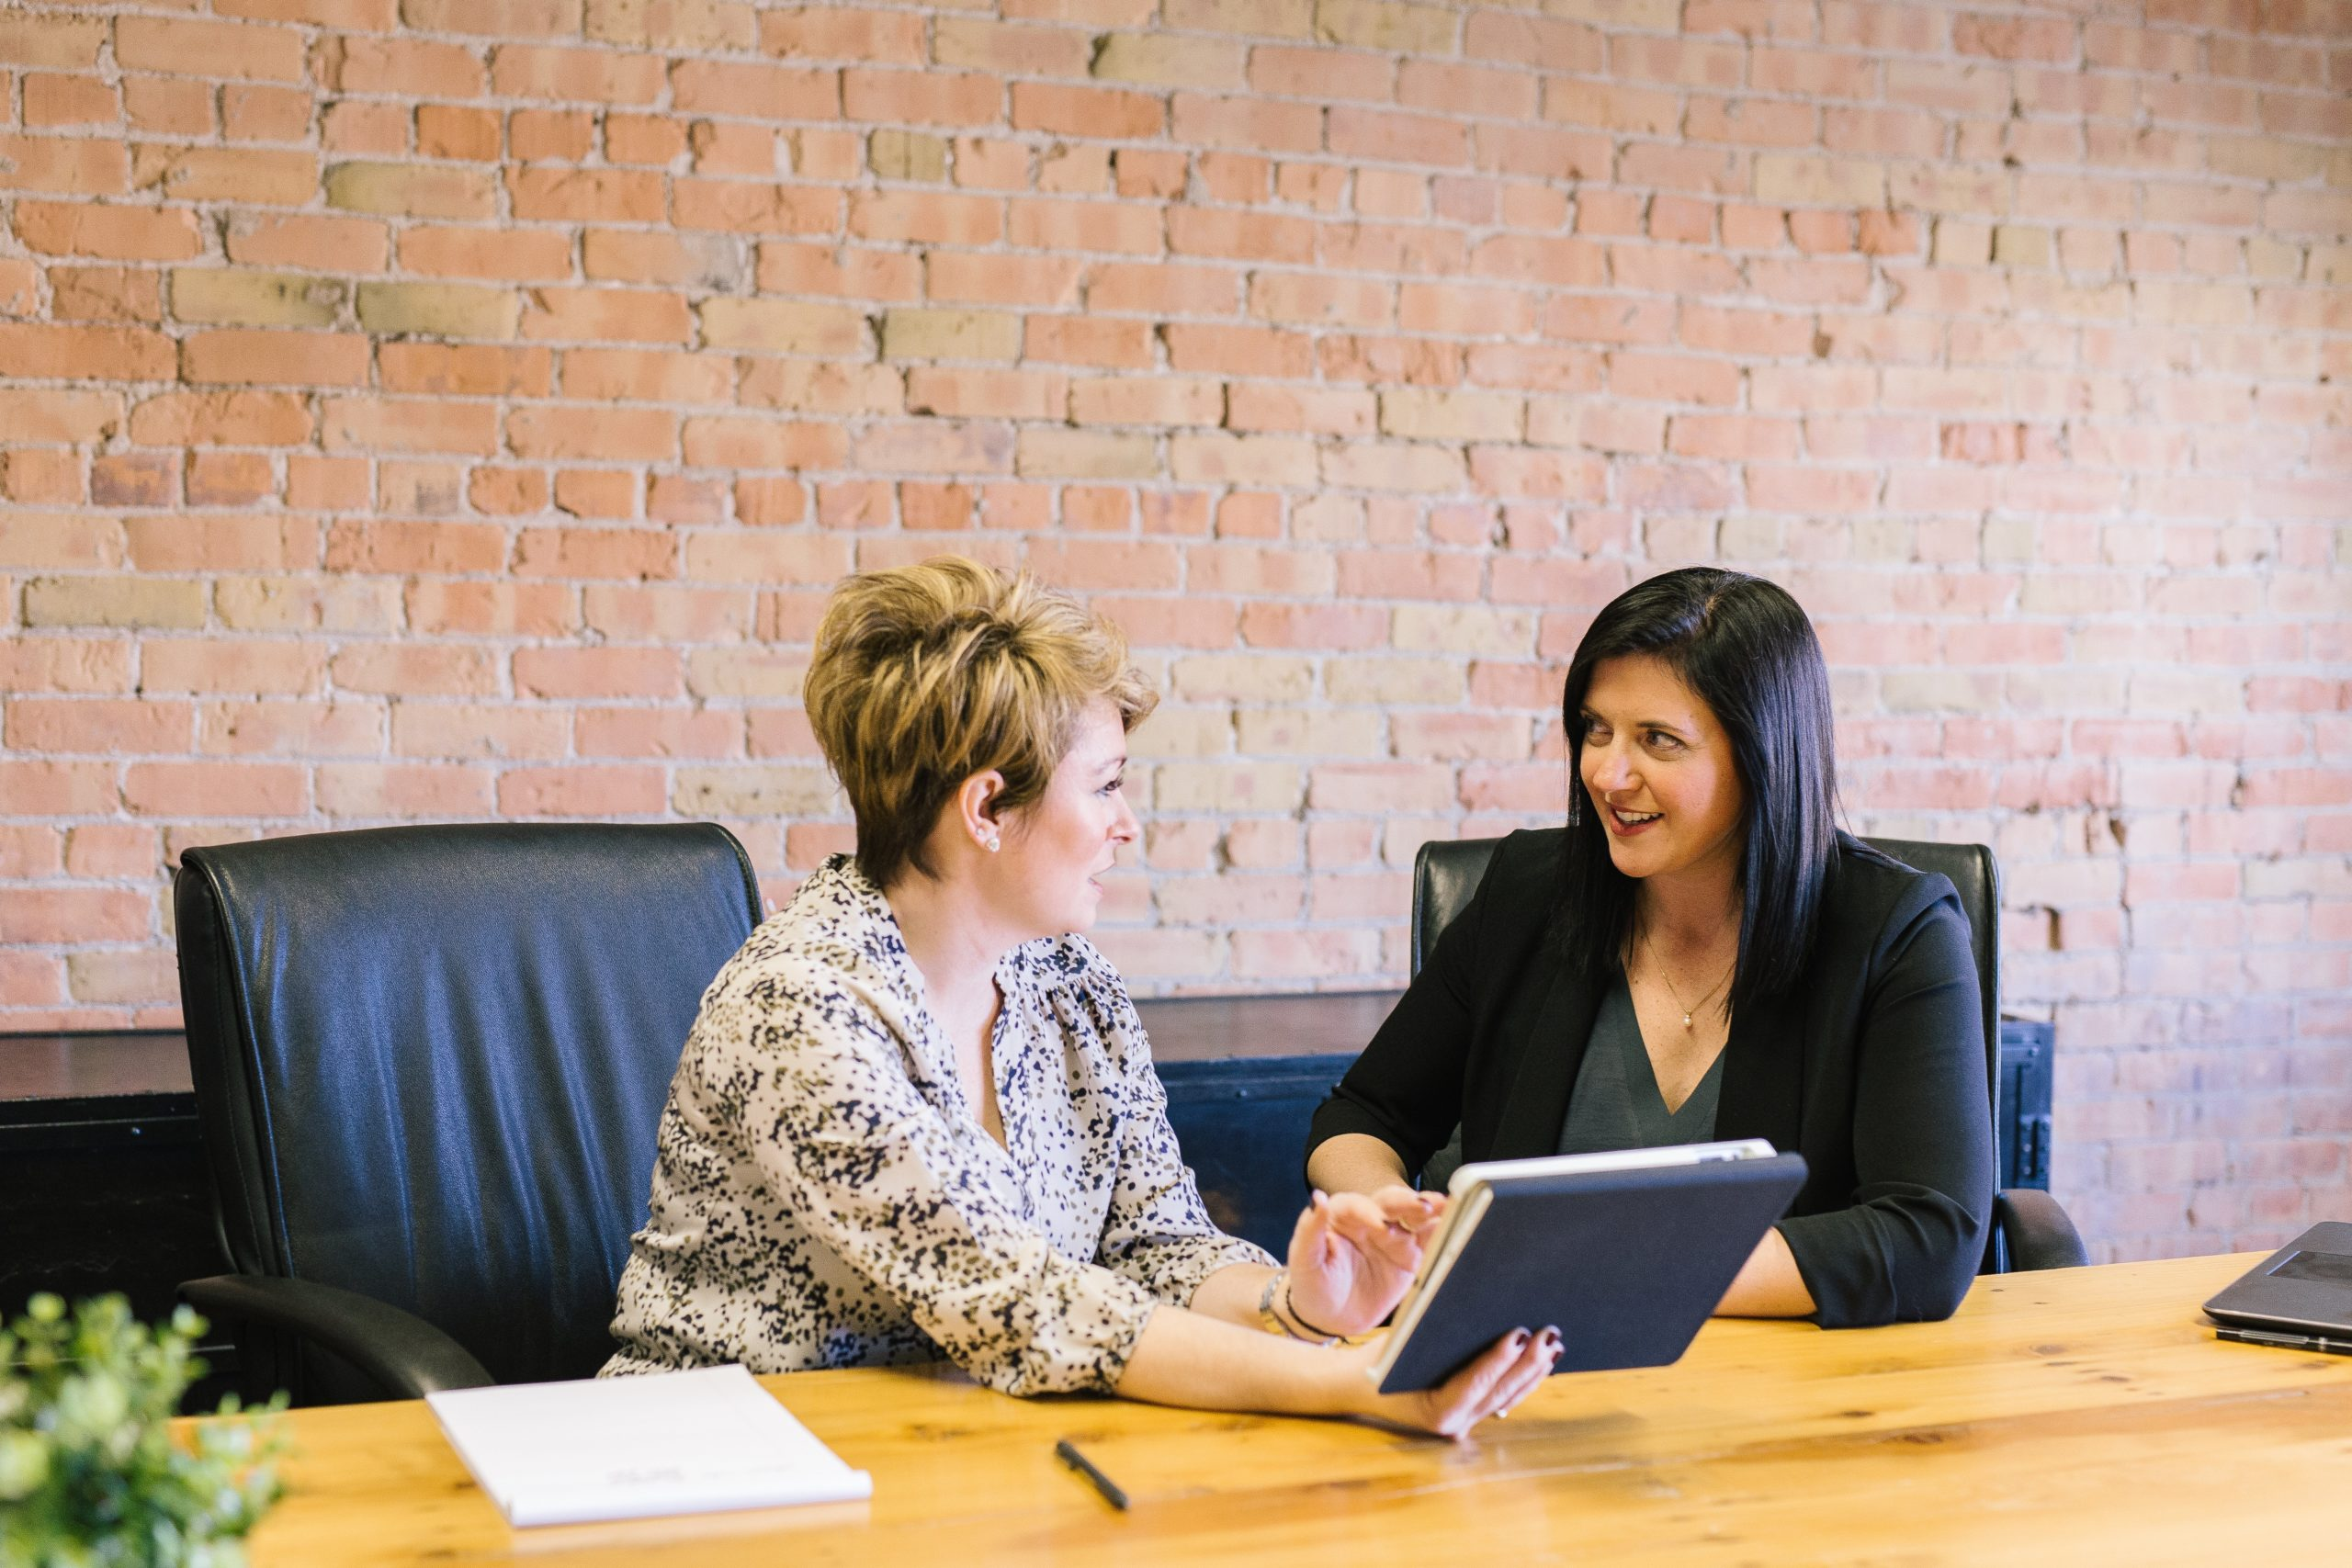 Consultants and Researchers: Get more out of your interviews